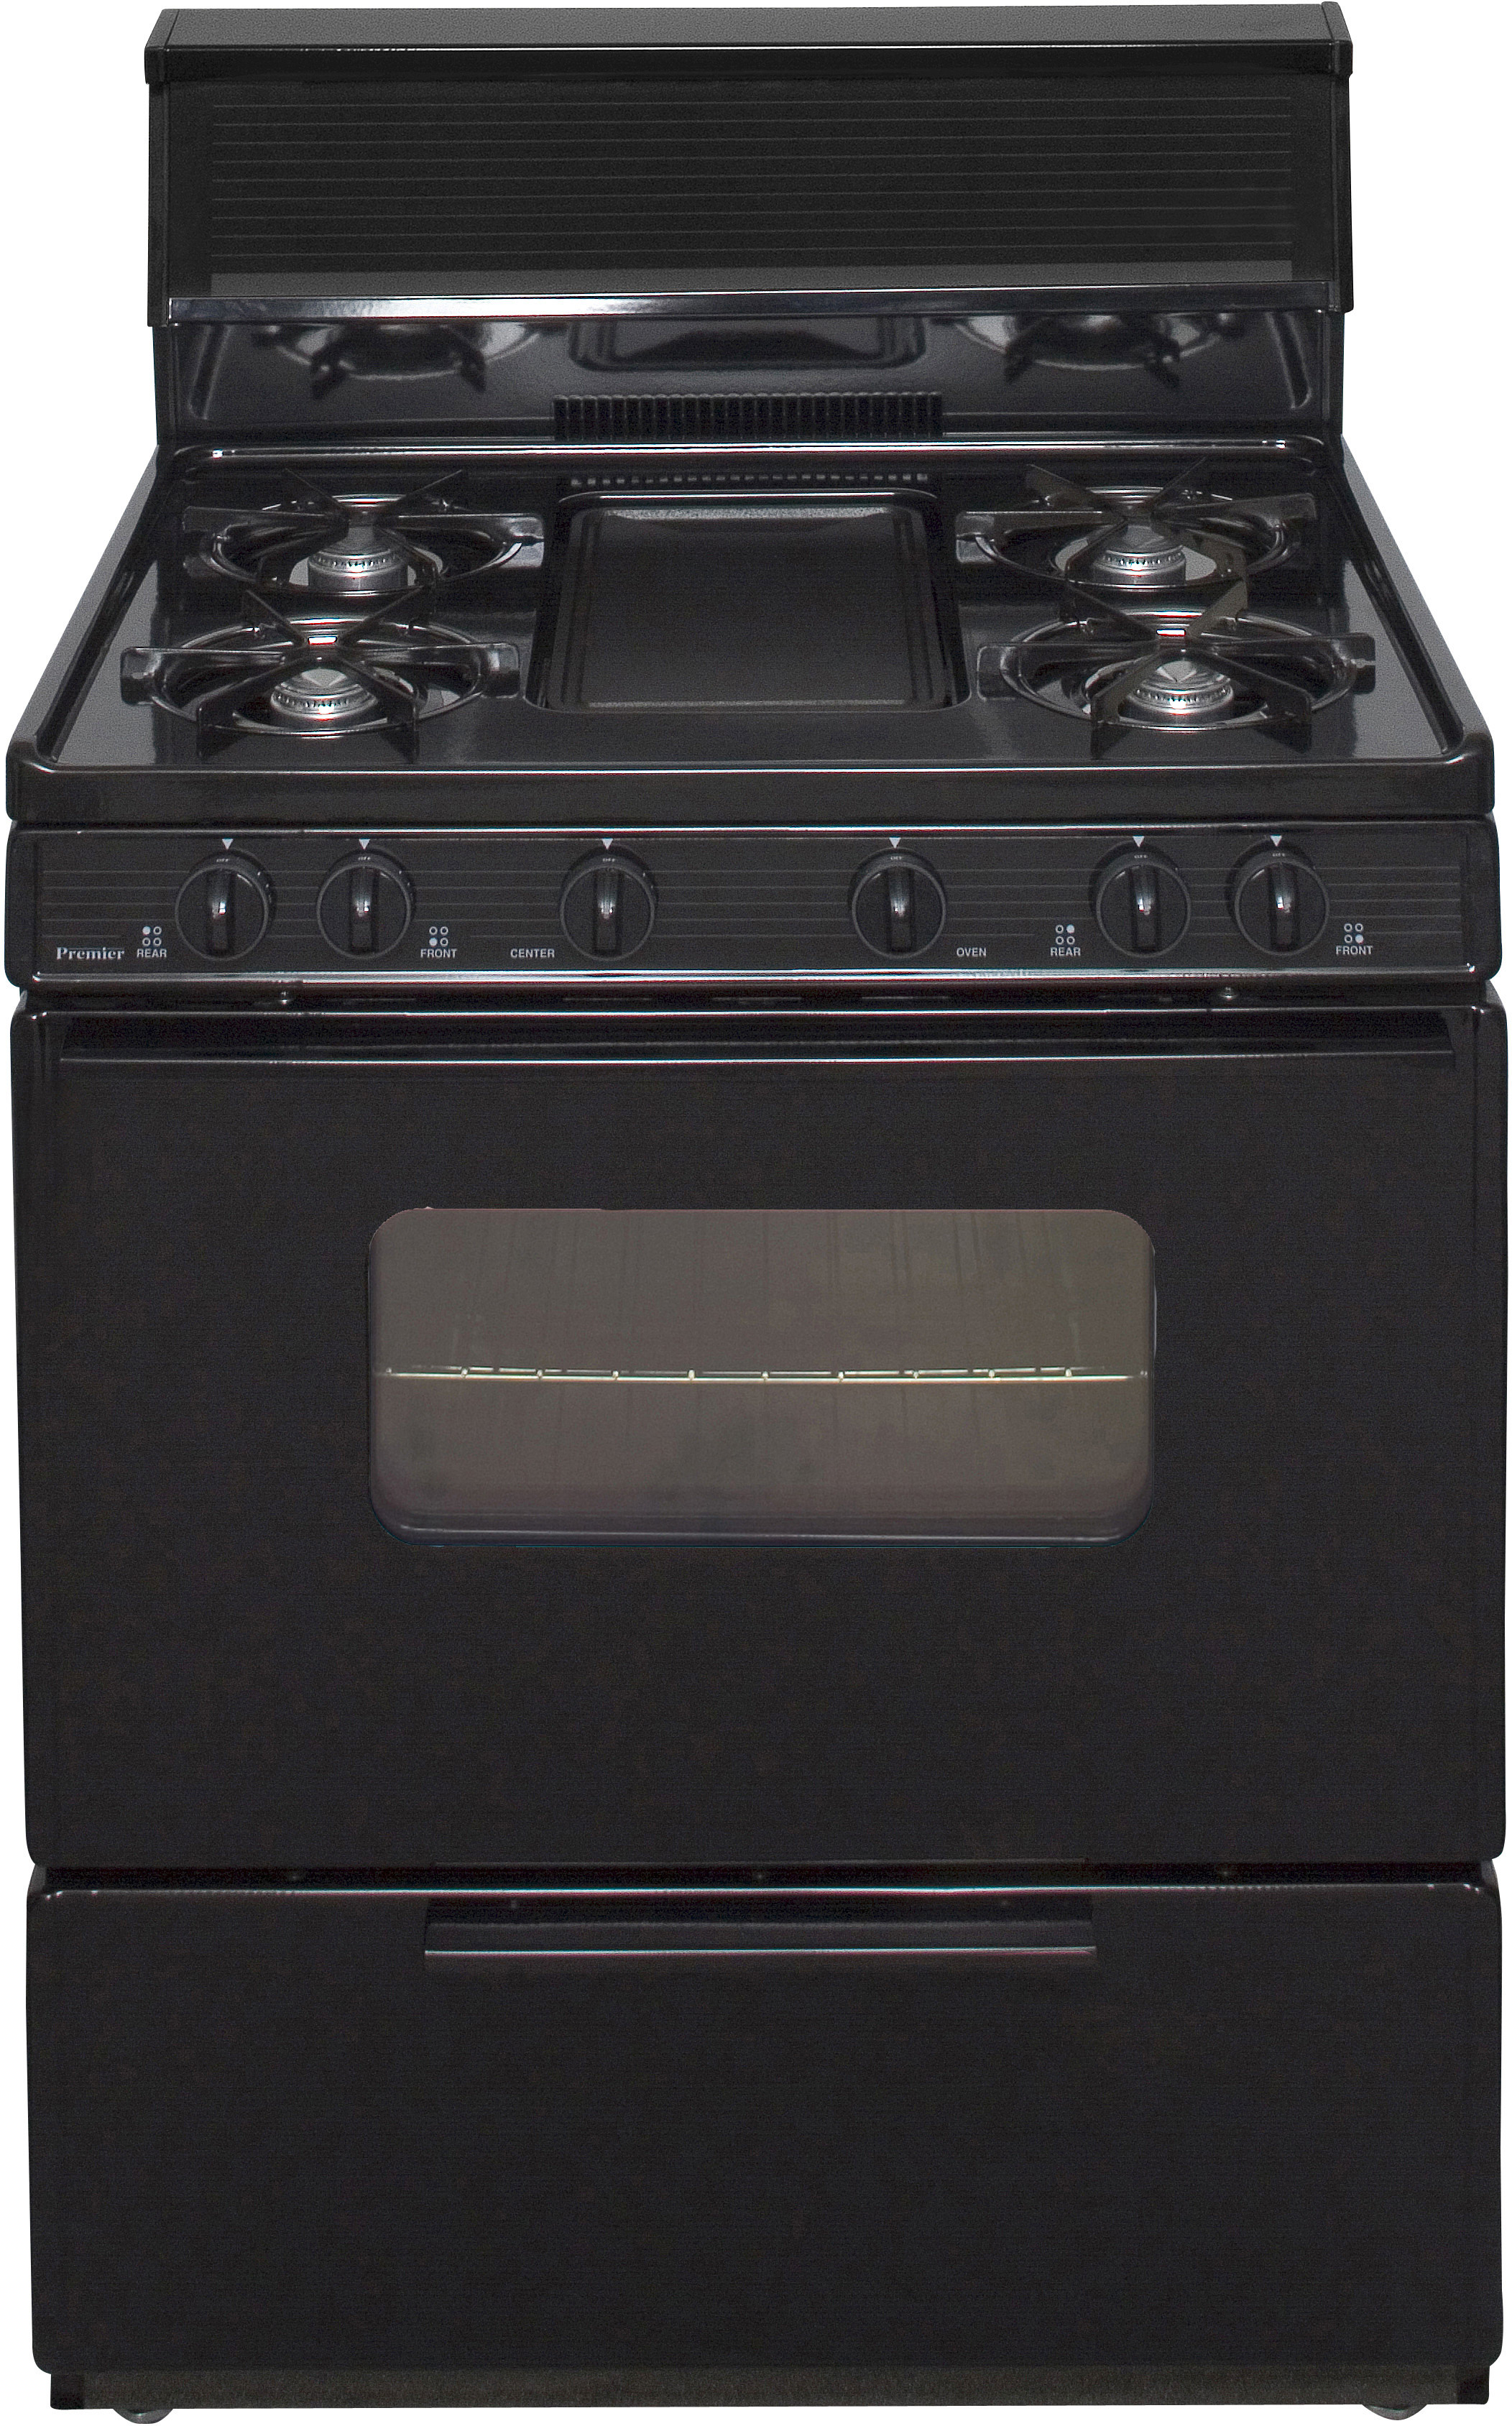 Premier Bfk5s9bp 30 Inch Freestanding Gas Range With 5 Open Burners